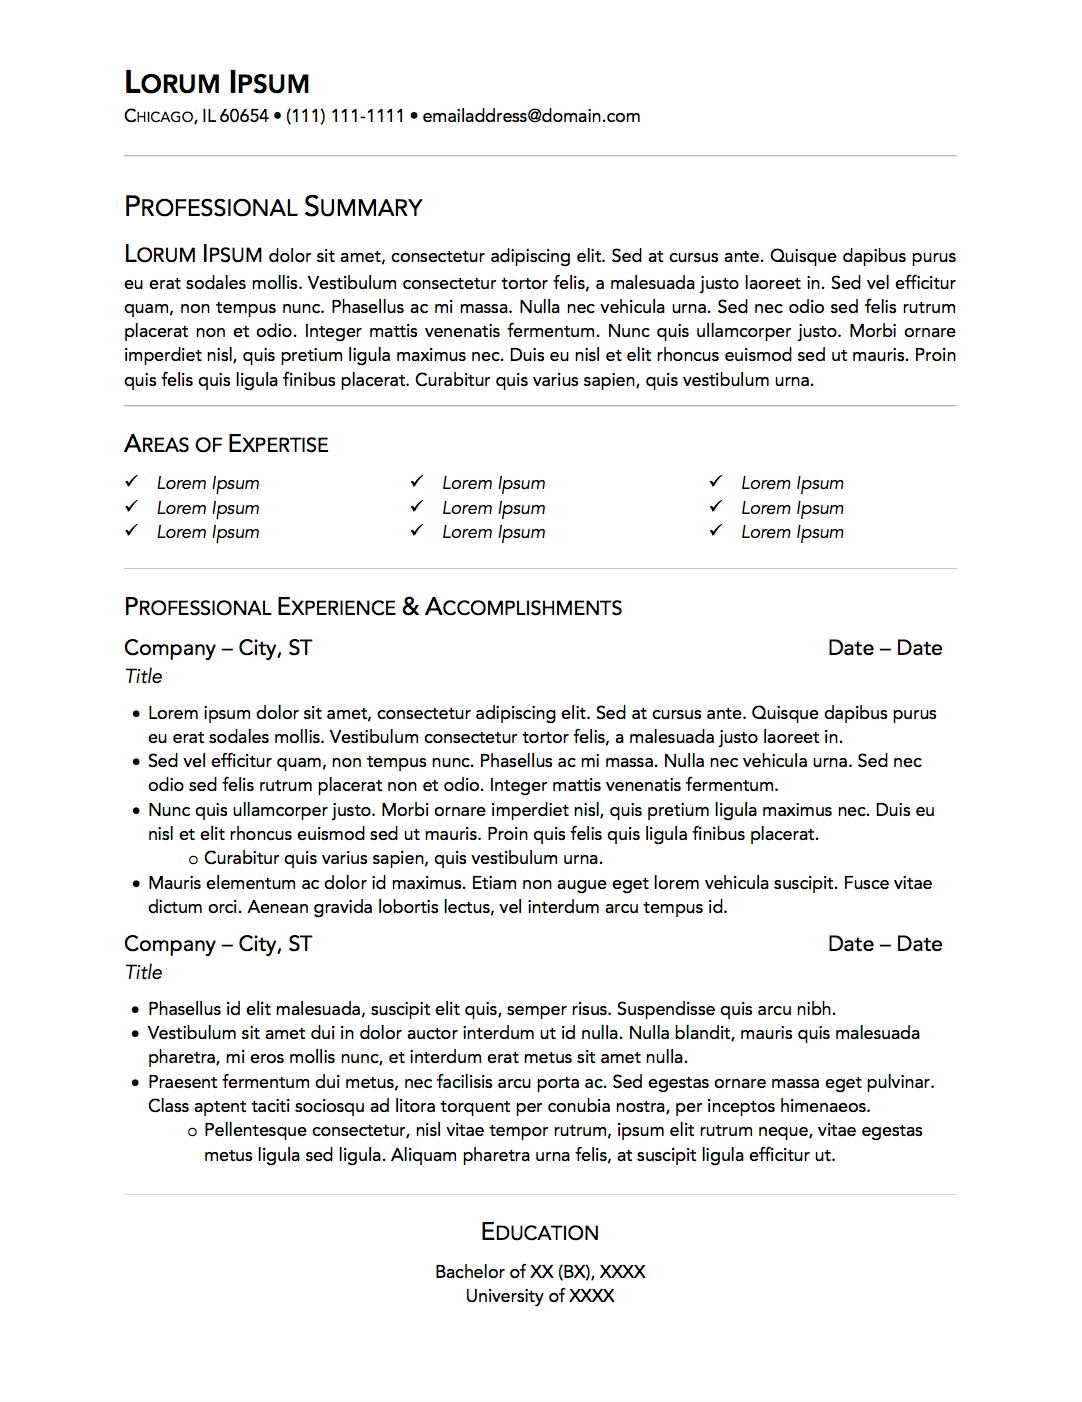 Resume Services Cost Simple Sample Resume Simple Resume By Employment Boost